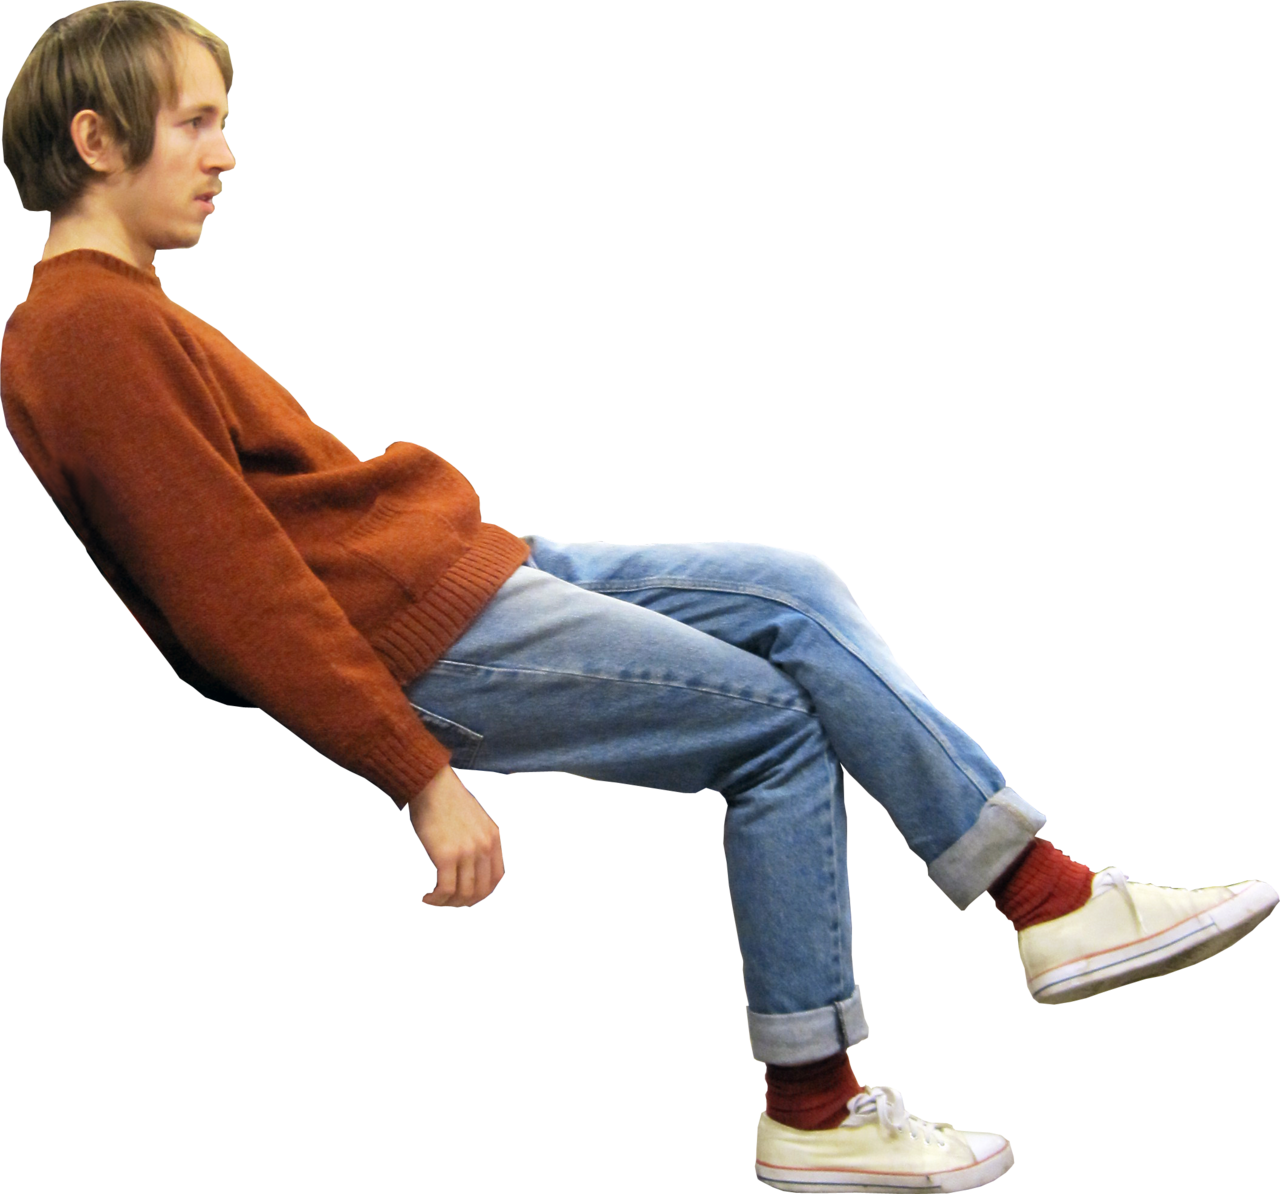 Person sitting on bench png. Man transparent mart